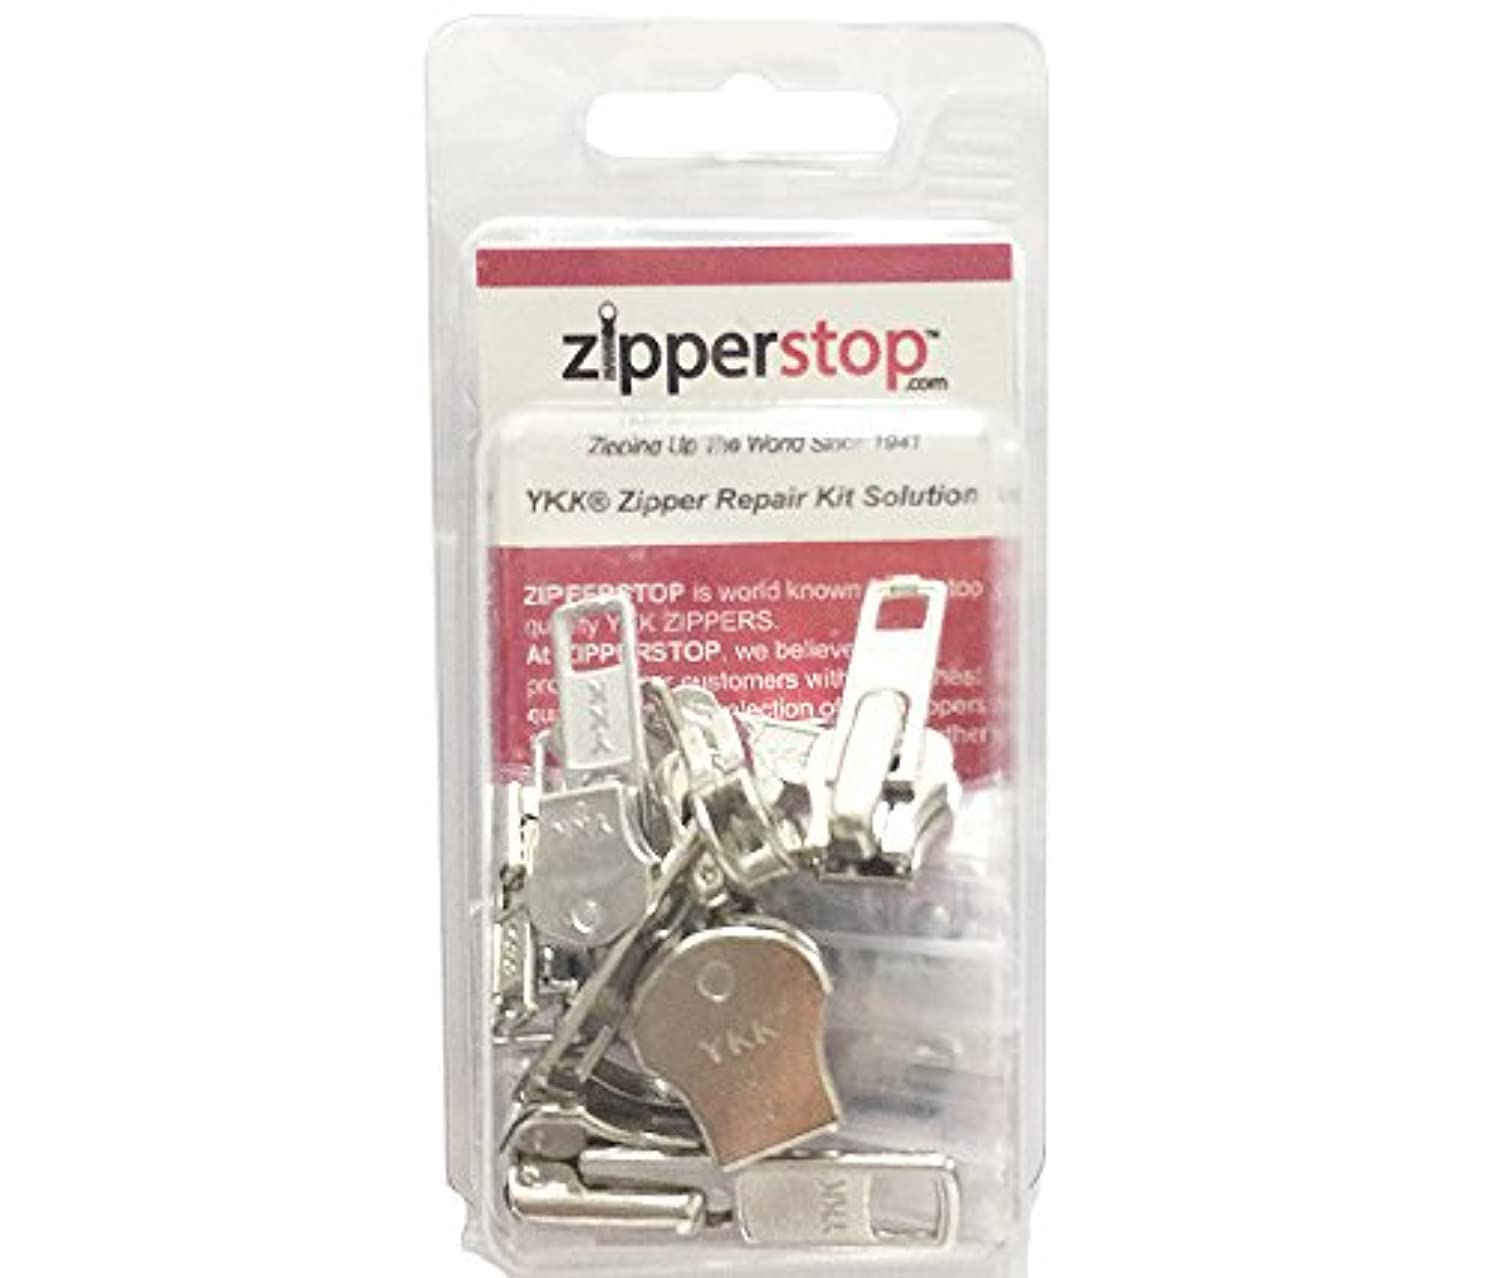 ZipperStop Wholesale - Zipper Repair Kit Solution 9 Sets YKK? Auto Lock Sliders Assorted 3 of #3, 2 of #5, 2 of #7 and 2 of #10 Included Top & Bottom Stops Made in USA (YKK Aluminum Auto Lock Sliders)